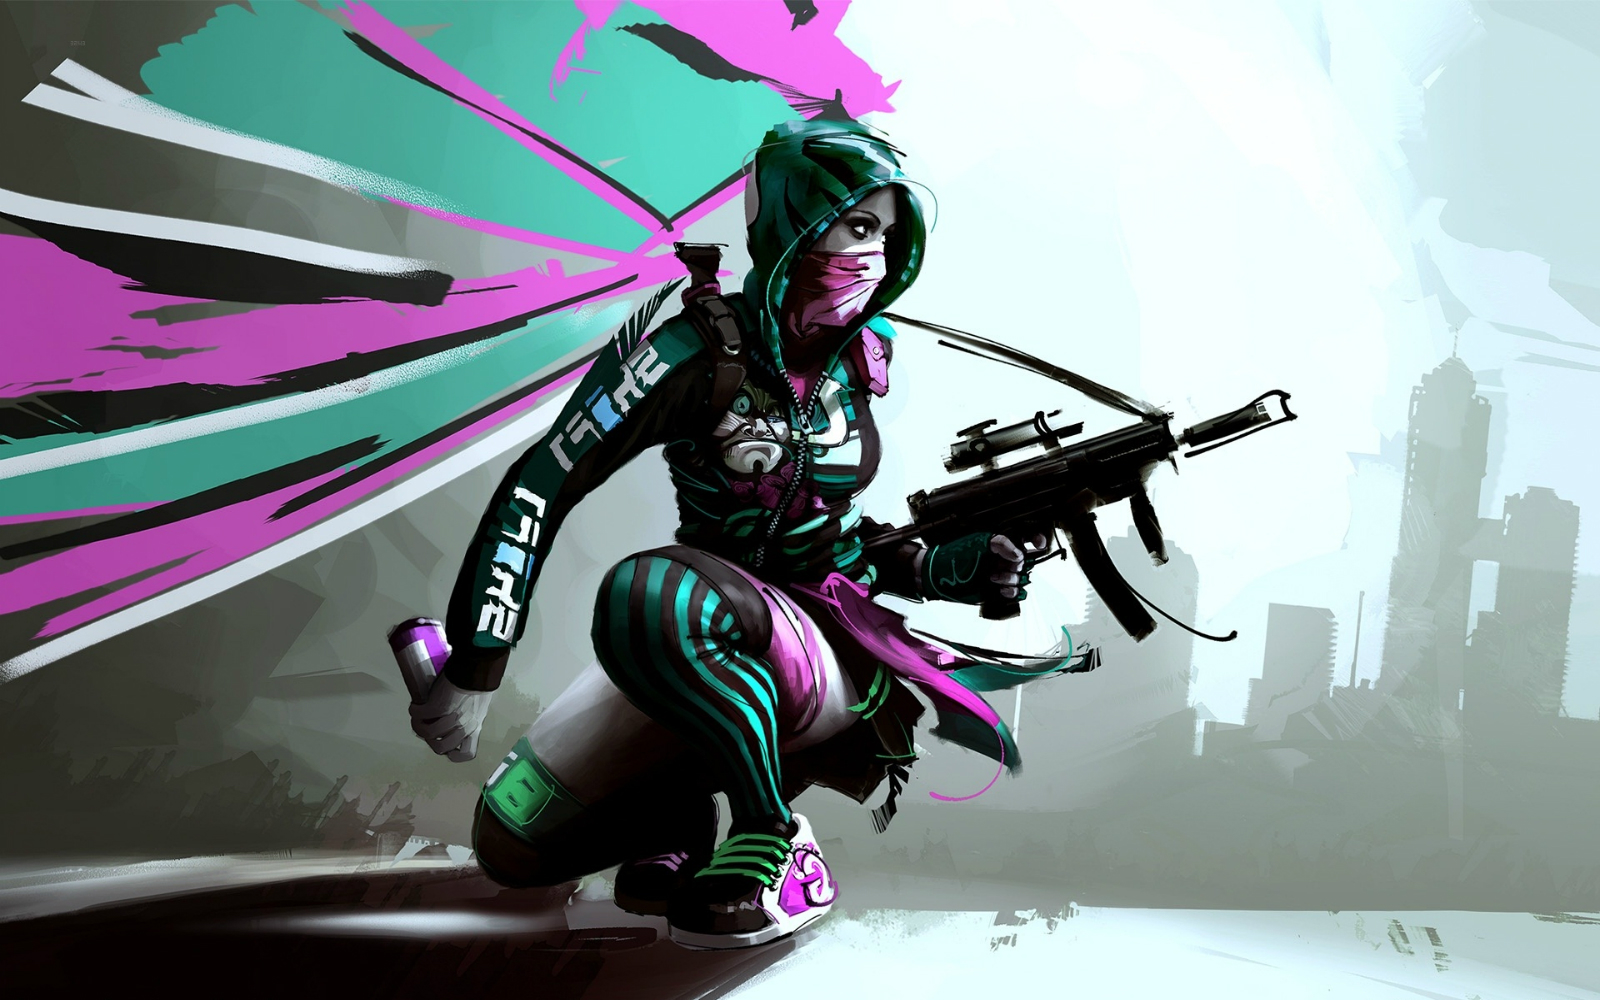 http://3.bp.blogspot.com/-VFr6hhmlHdc/TlwXc7yZZKI/AAAAAAAAAvg/2BSNbQGgX8k/s1600/apb_reloaded_closed_beta_girls_gun_artwork_colorfull_san_puro_background_Wallpaper_www.Vvallpaper.net.jpg